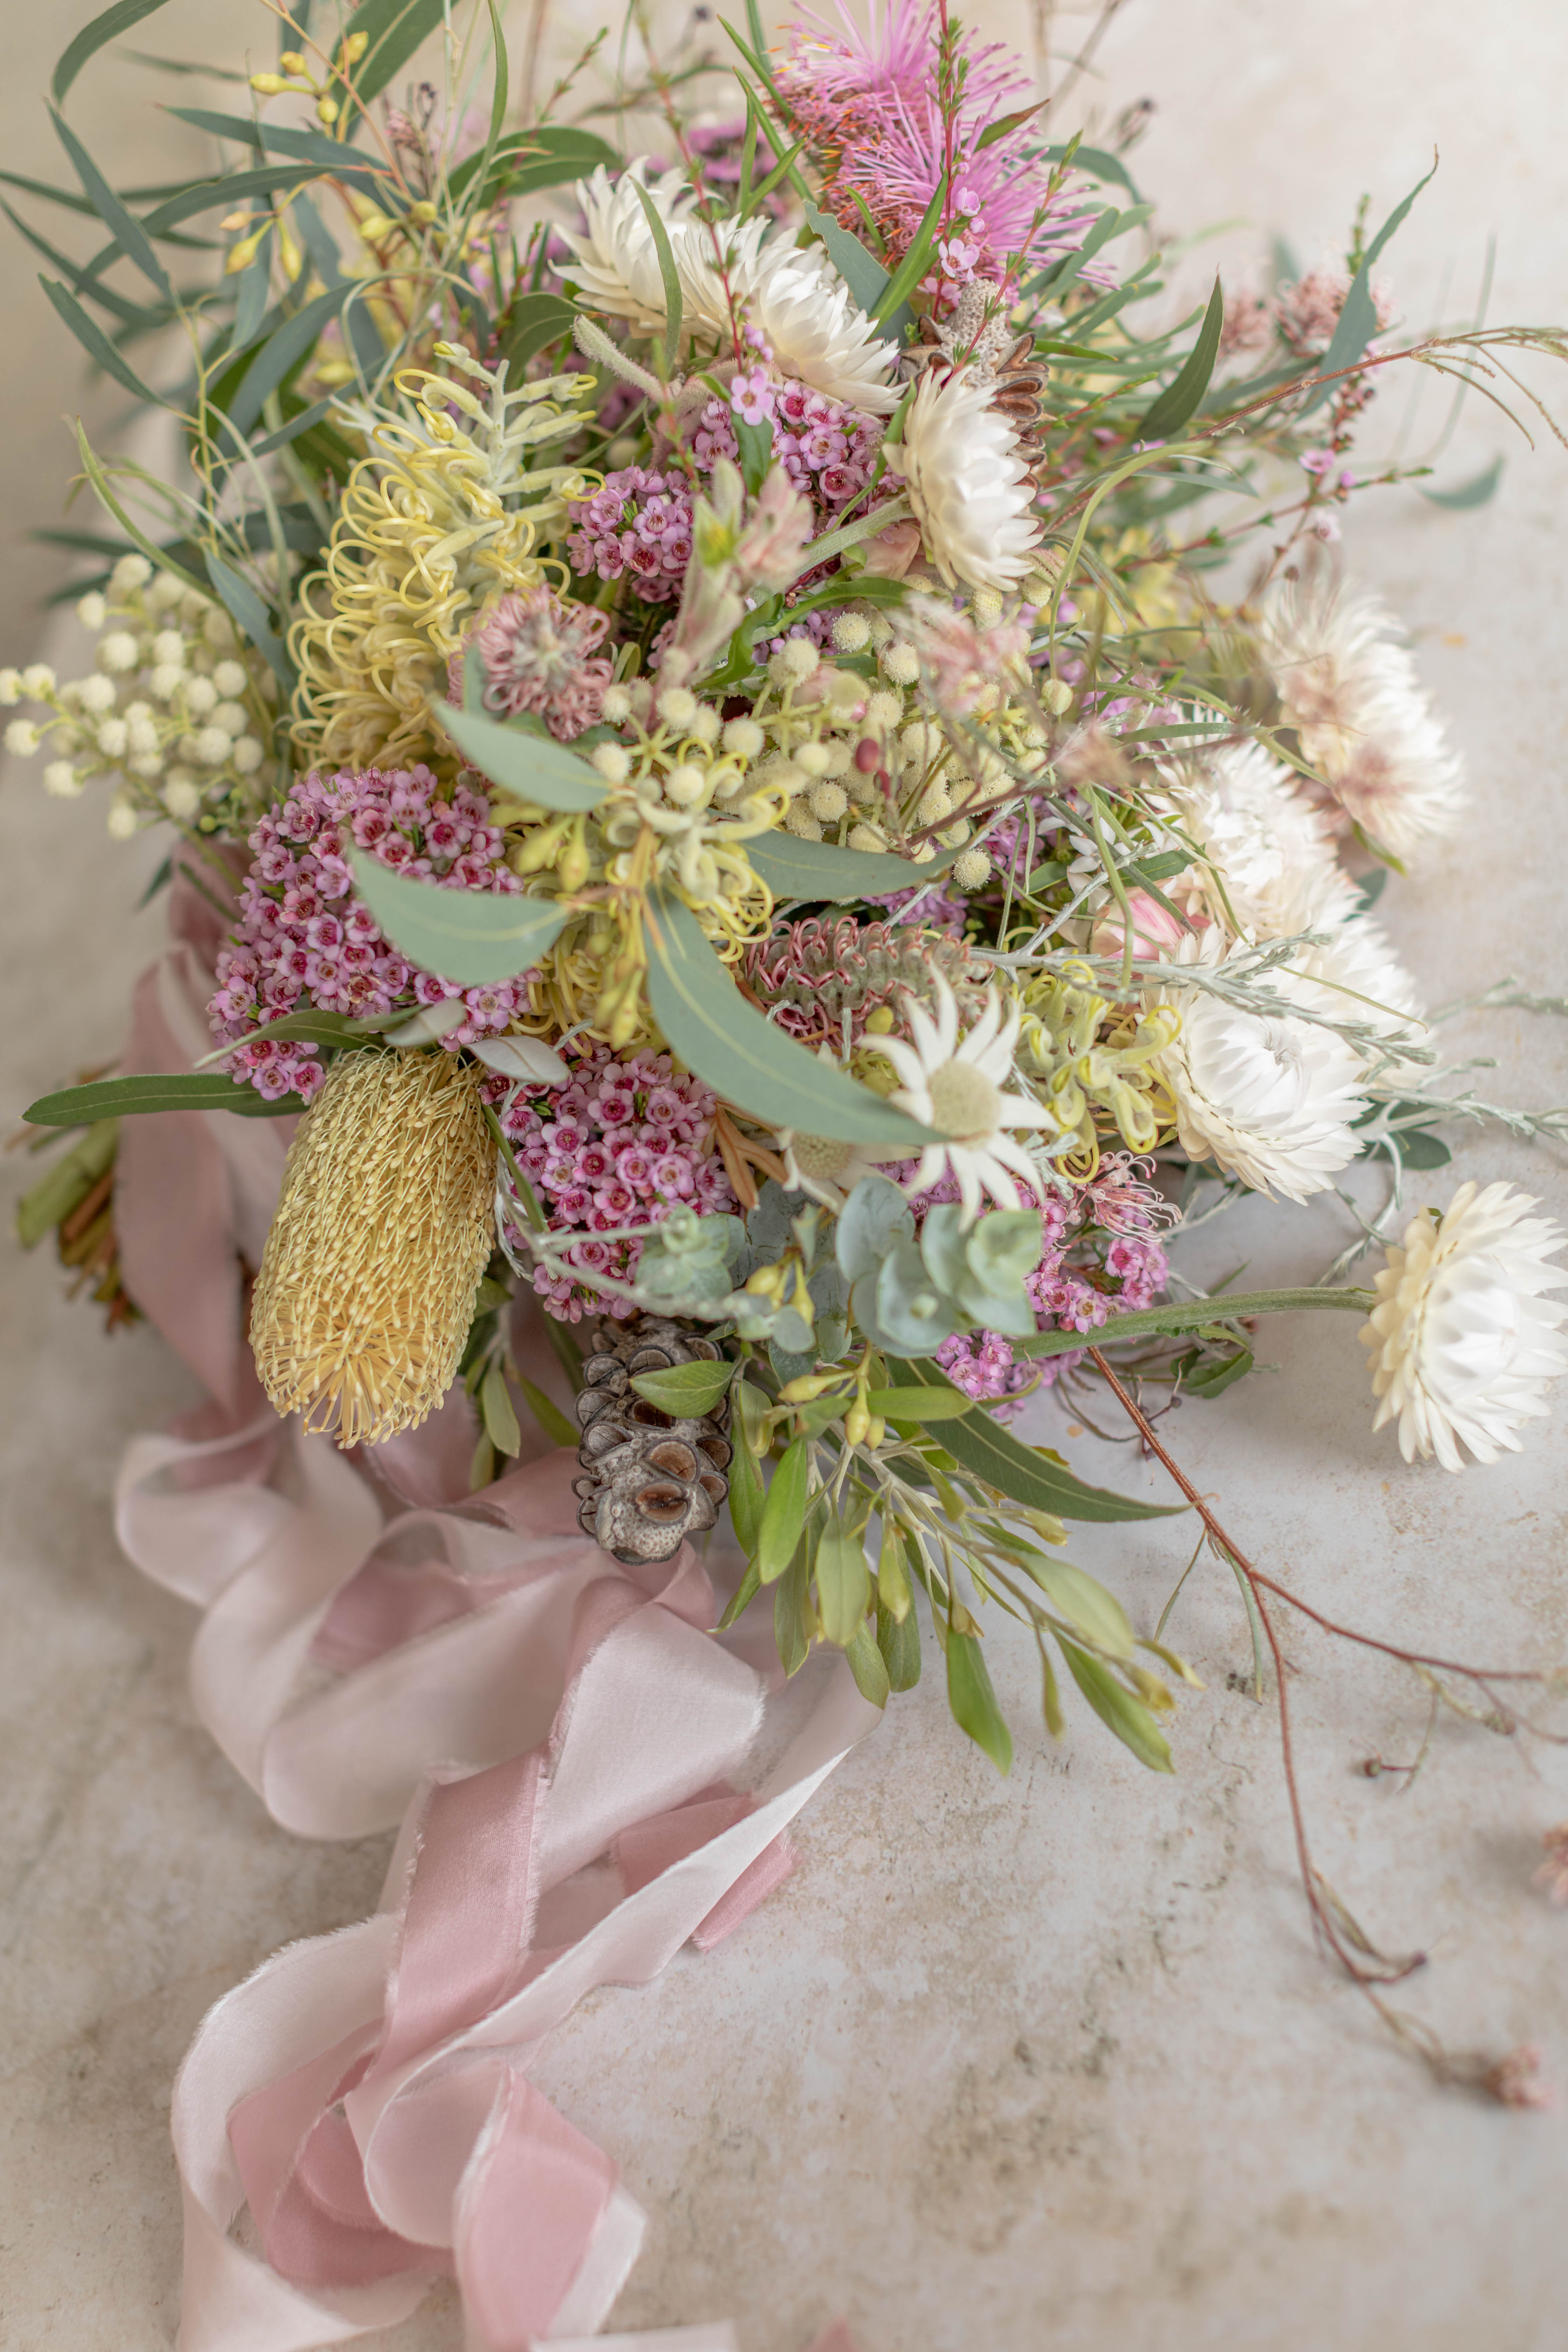 Native spring wedding bouquet from River